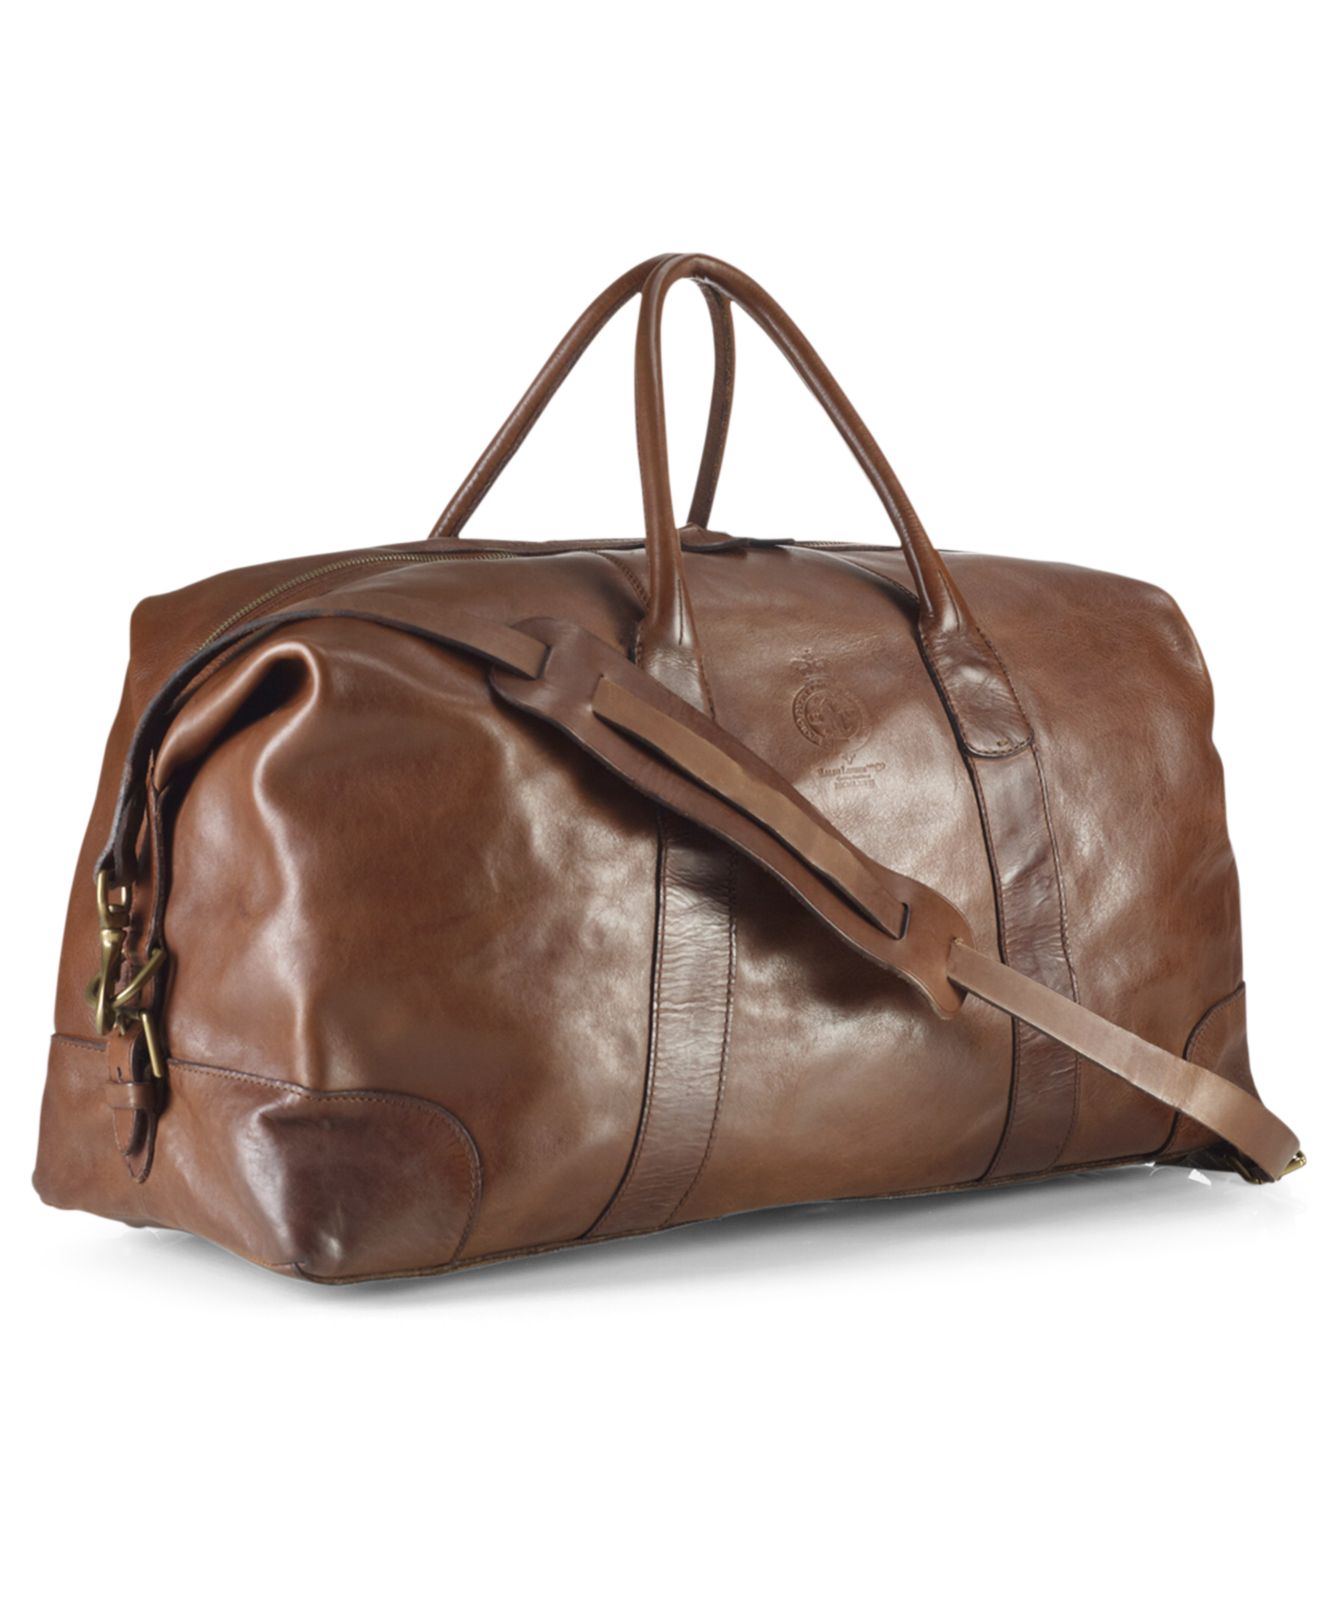 a12f87c6d7 Lyst - Polo Ralph Lauren Core Leather Duffle Bag in Brown for Men